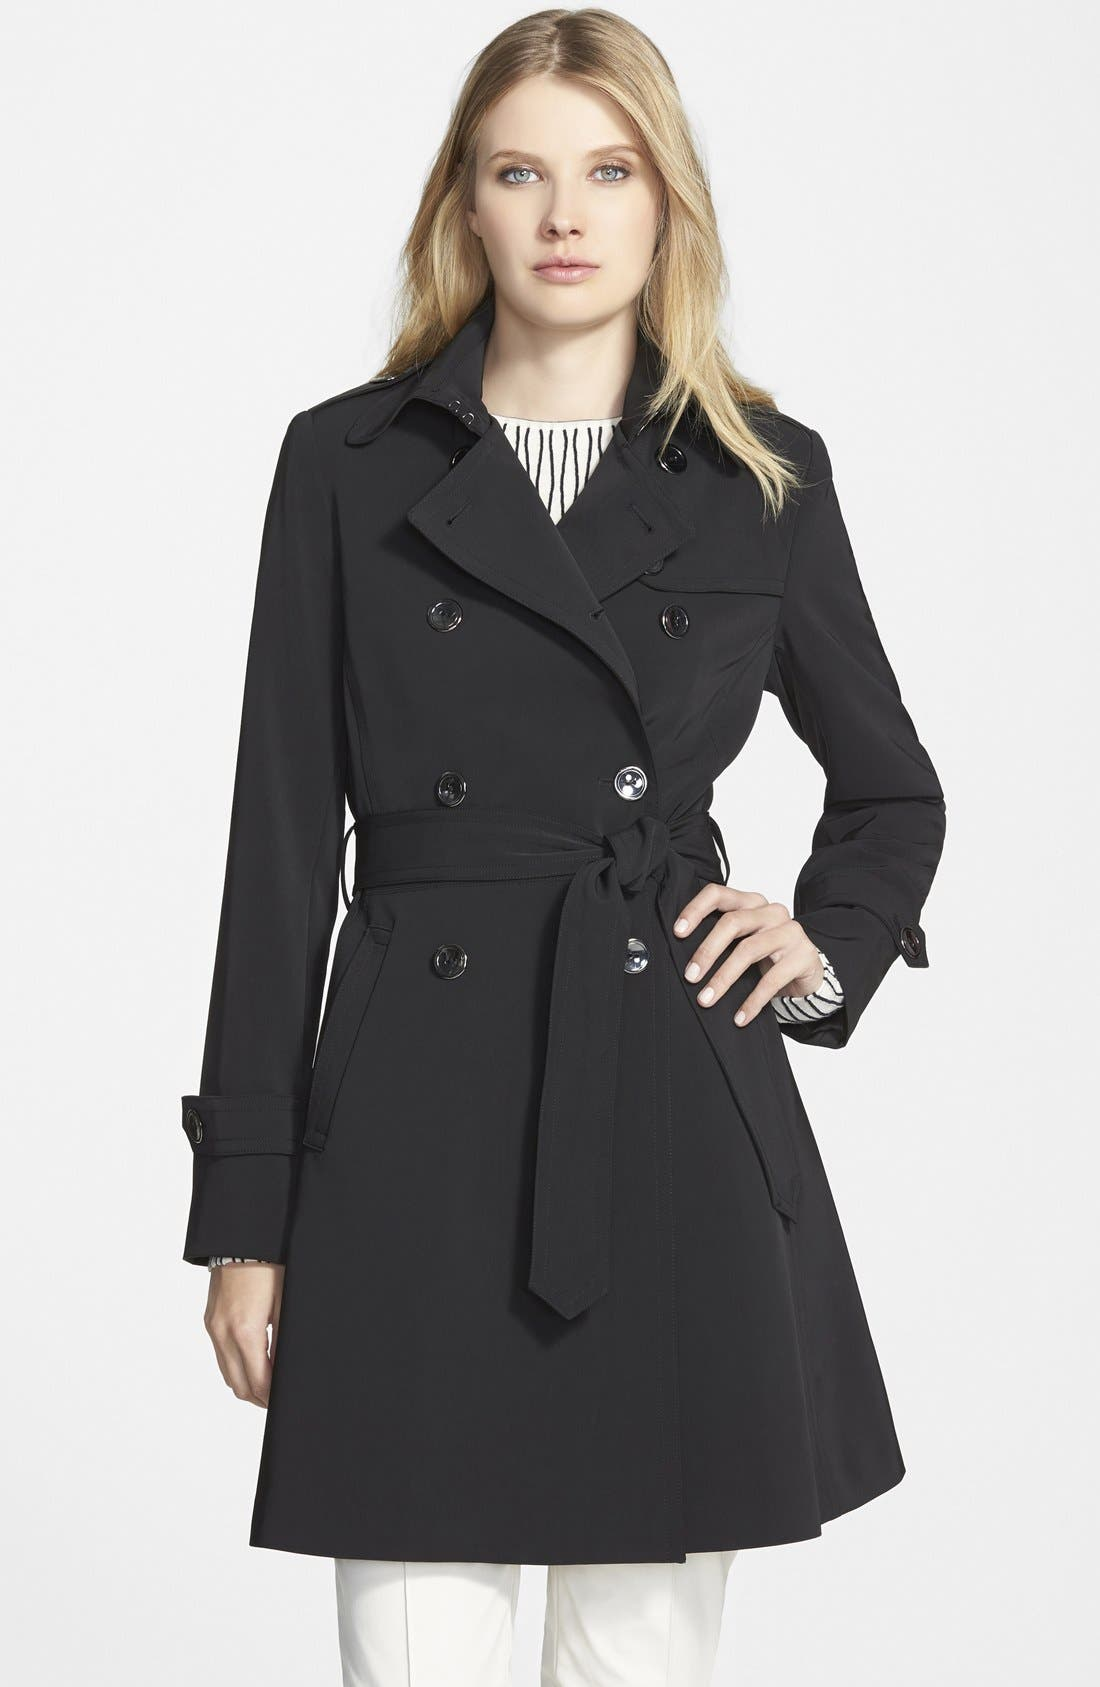 Alternate Image 1 Selected - Trina Turk 'Juliette' Double Breasted Skirted Trench Coat